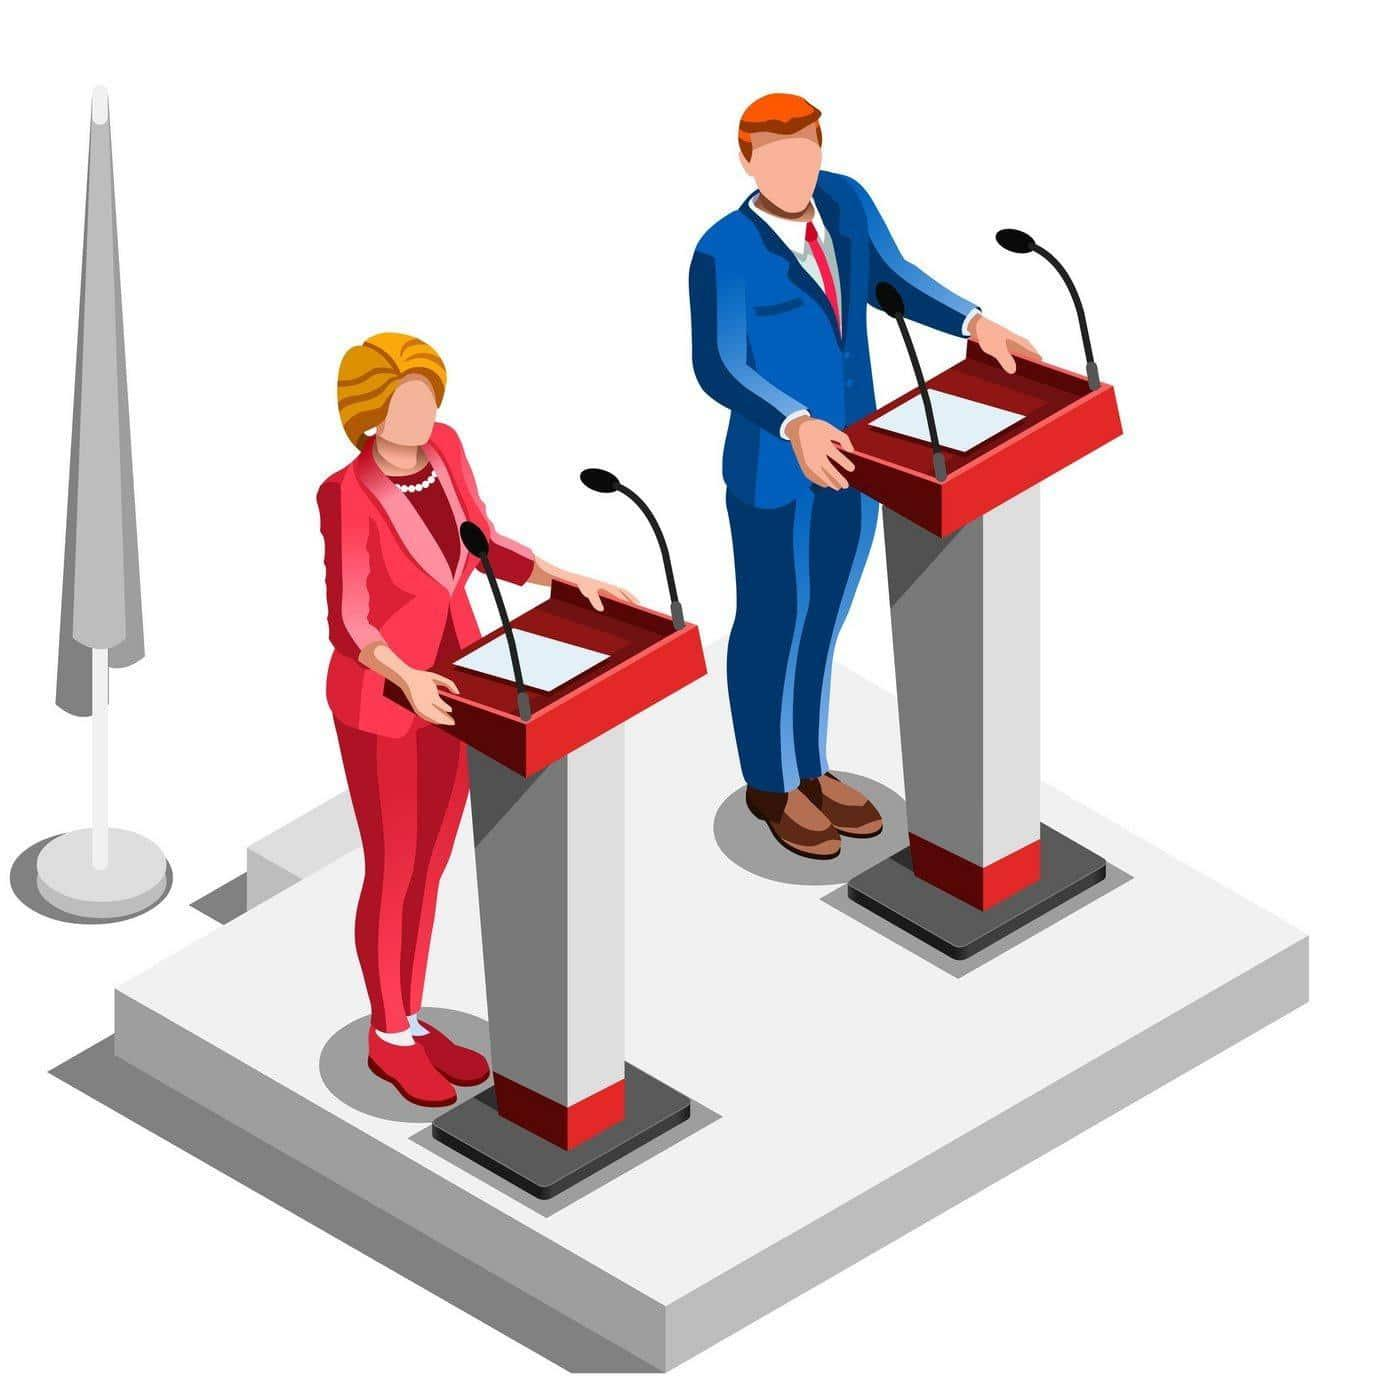 AIS provided copiers and printers for the 2016 presidential debate